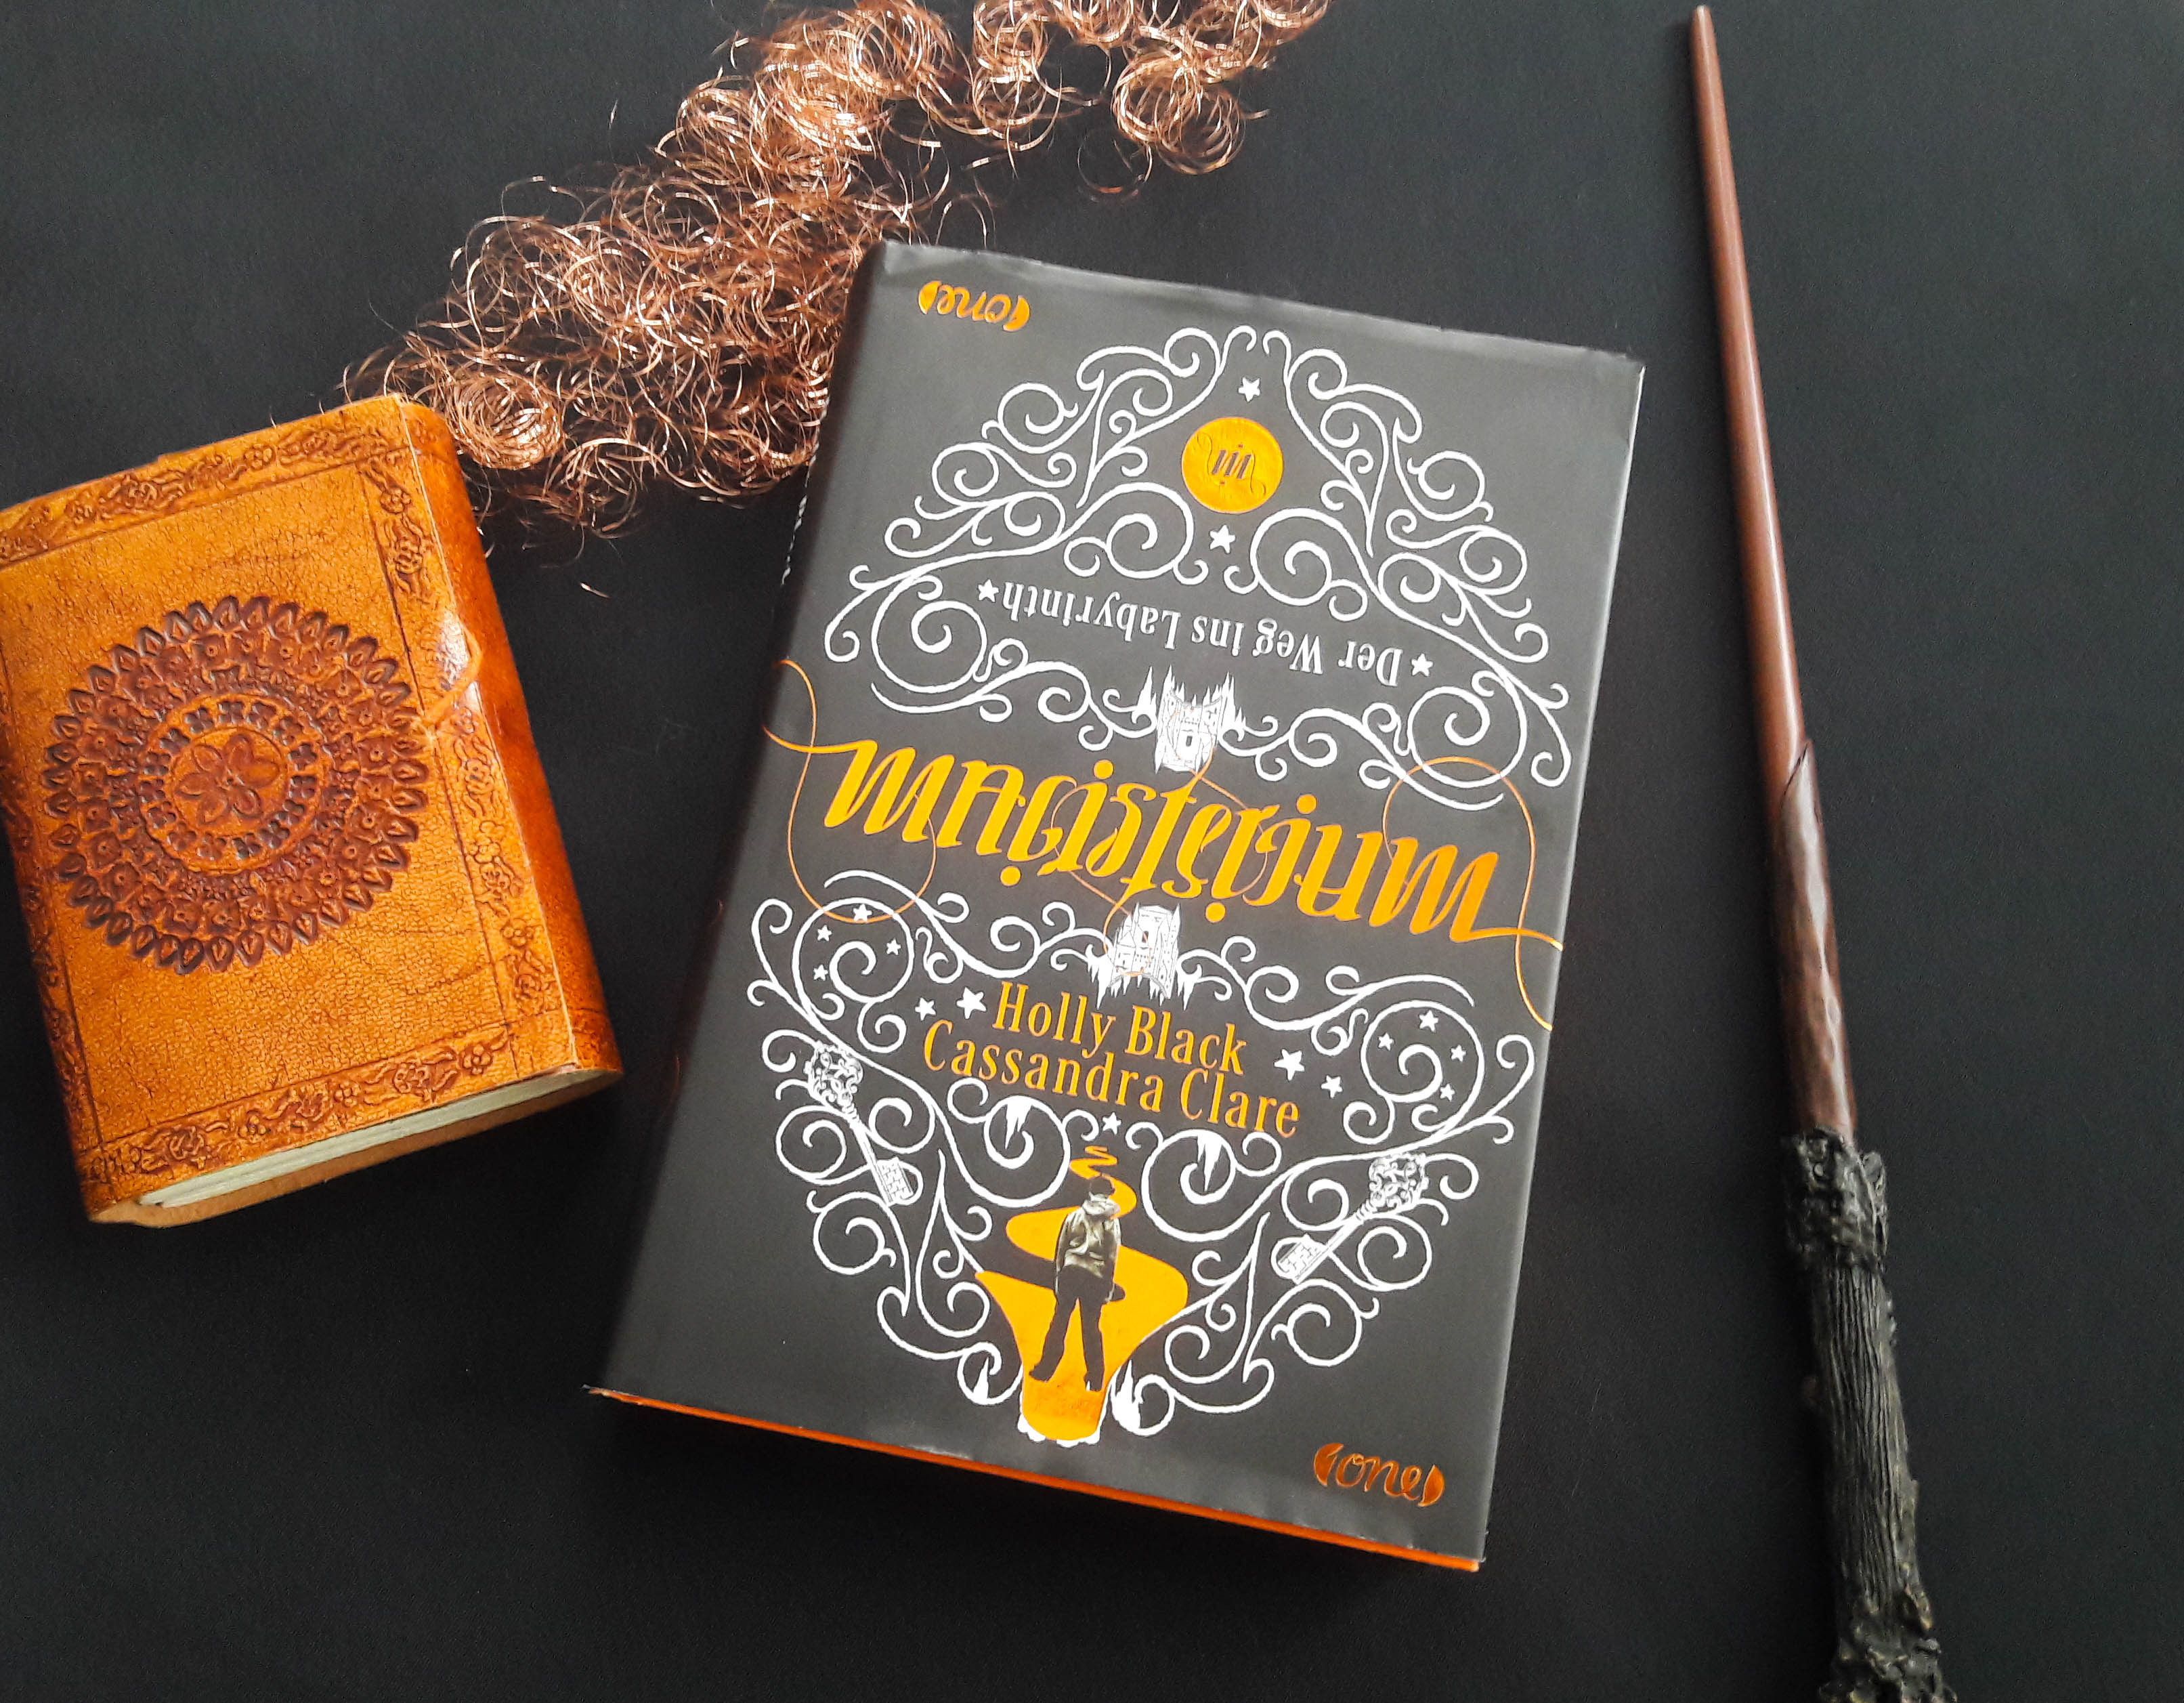 Magisterium: Der Weg ins Labyrinth – Holly Black und Cassandra Clare graphic